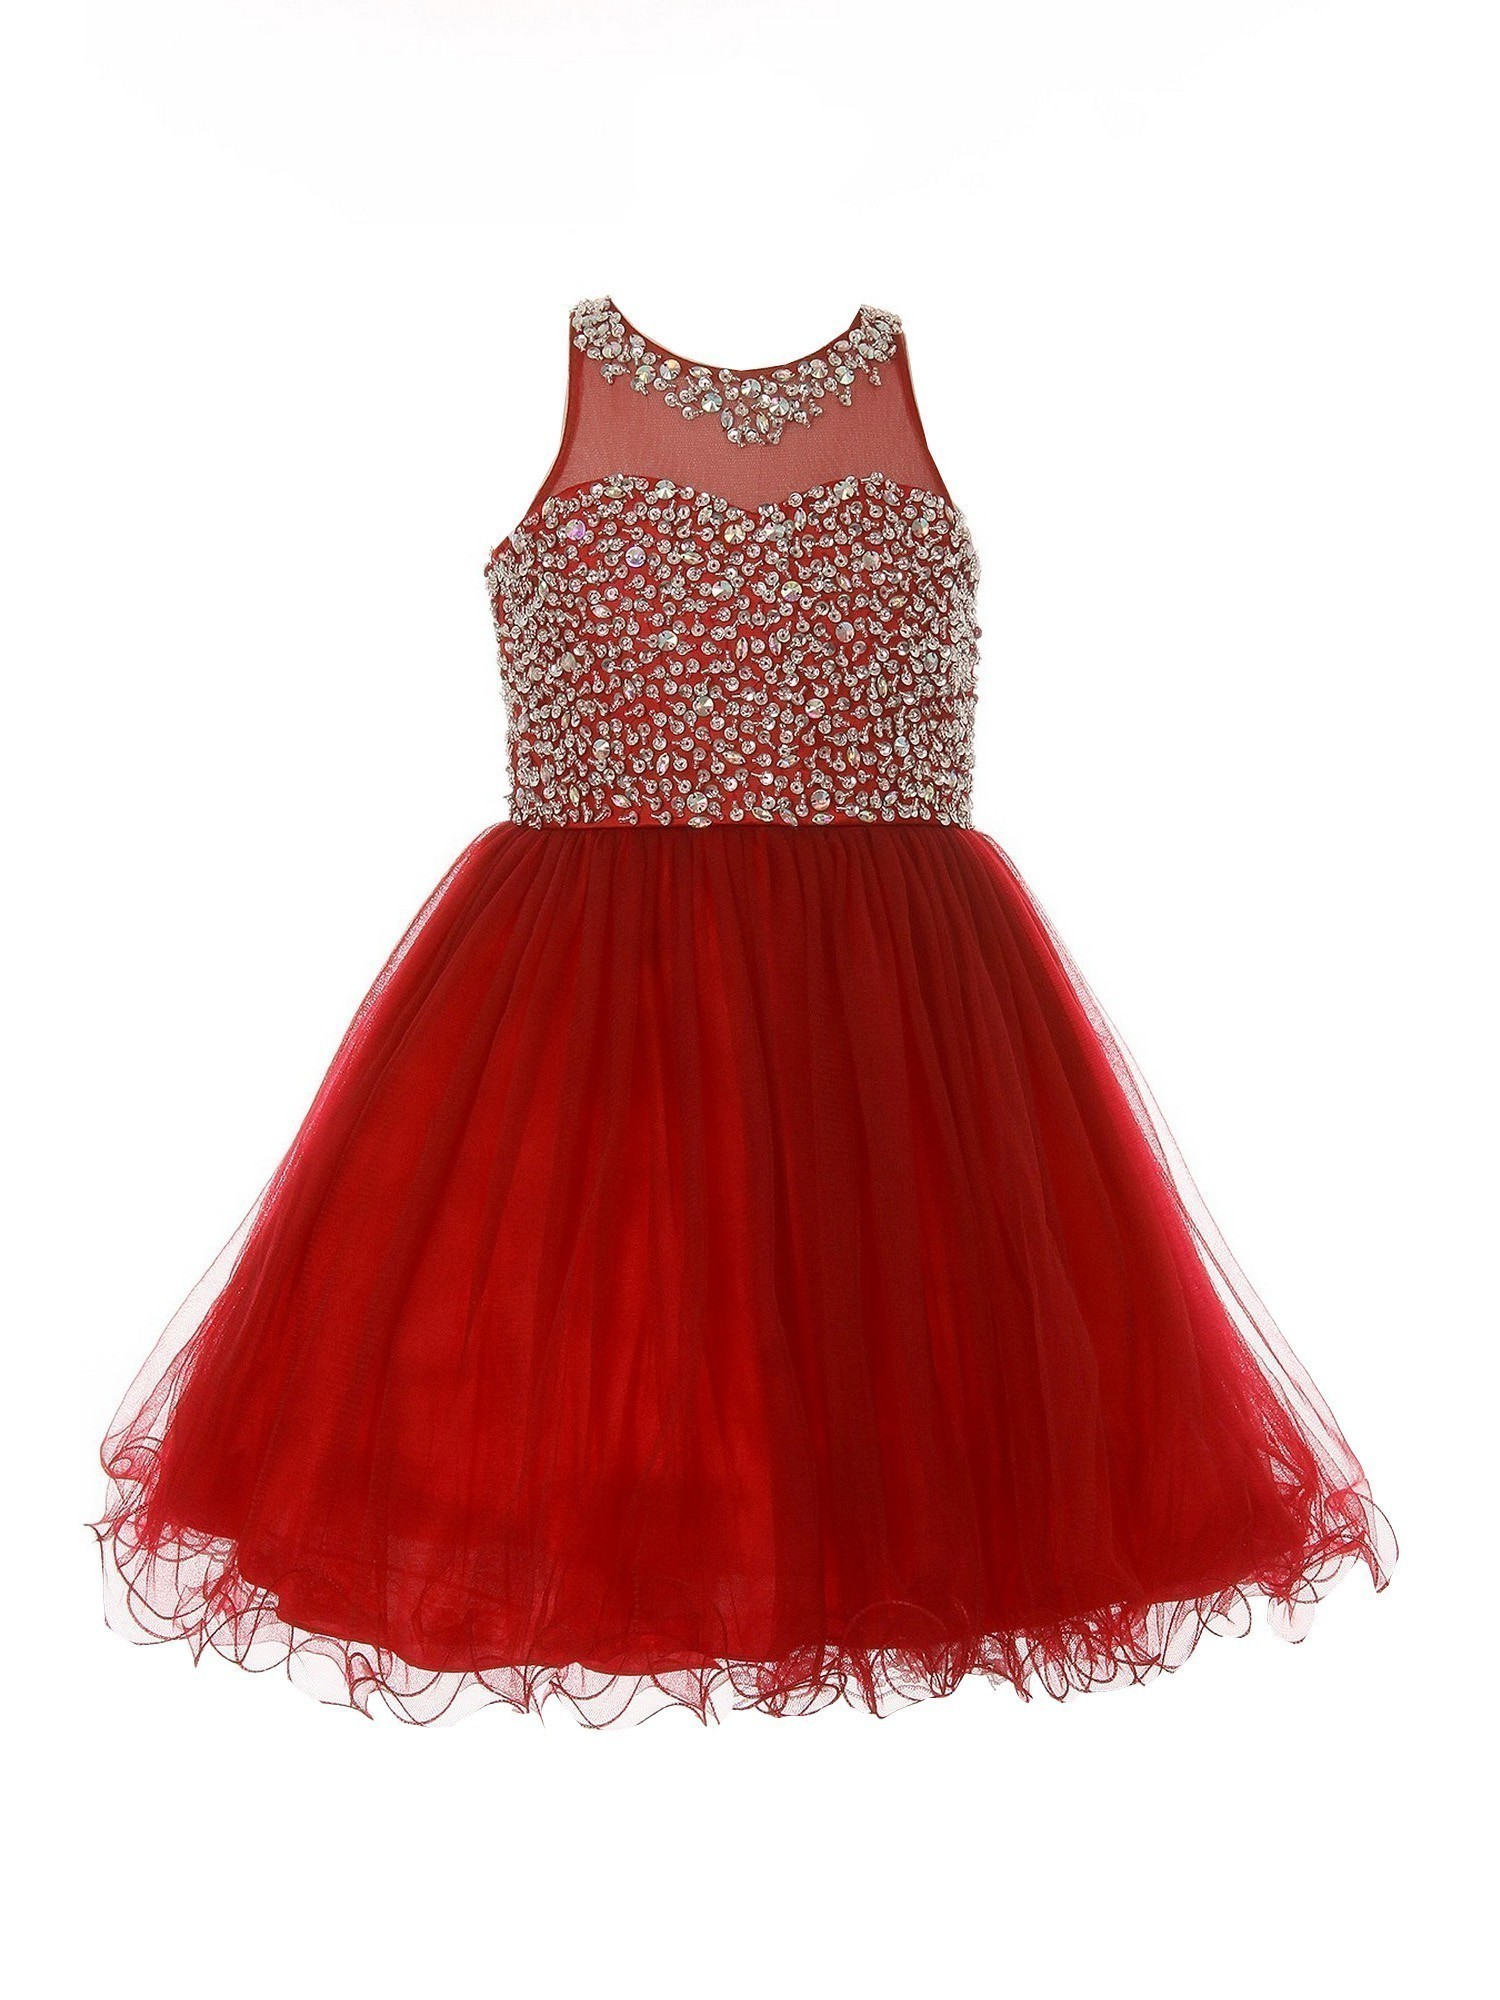 Girls Dresses for All Occasions